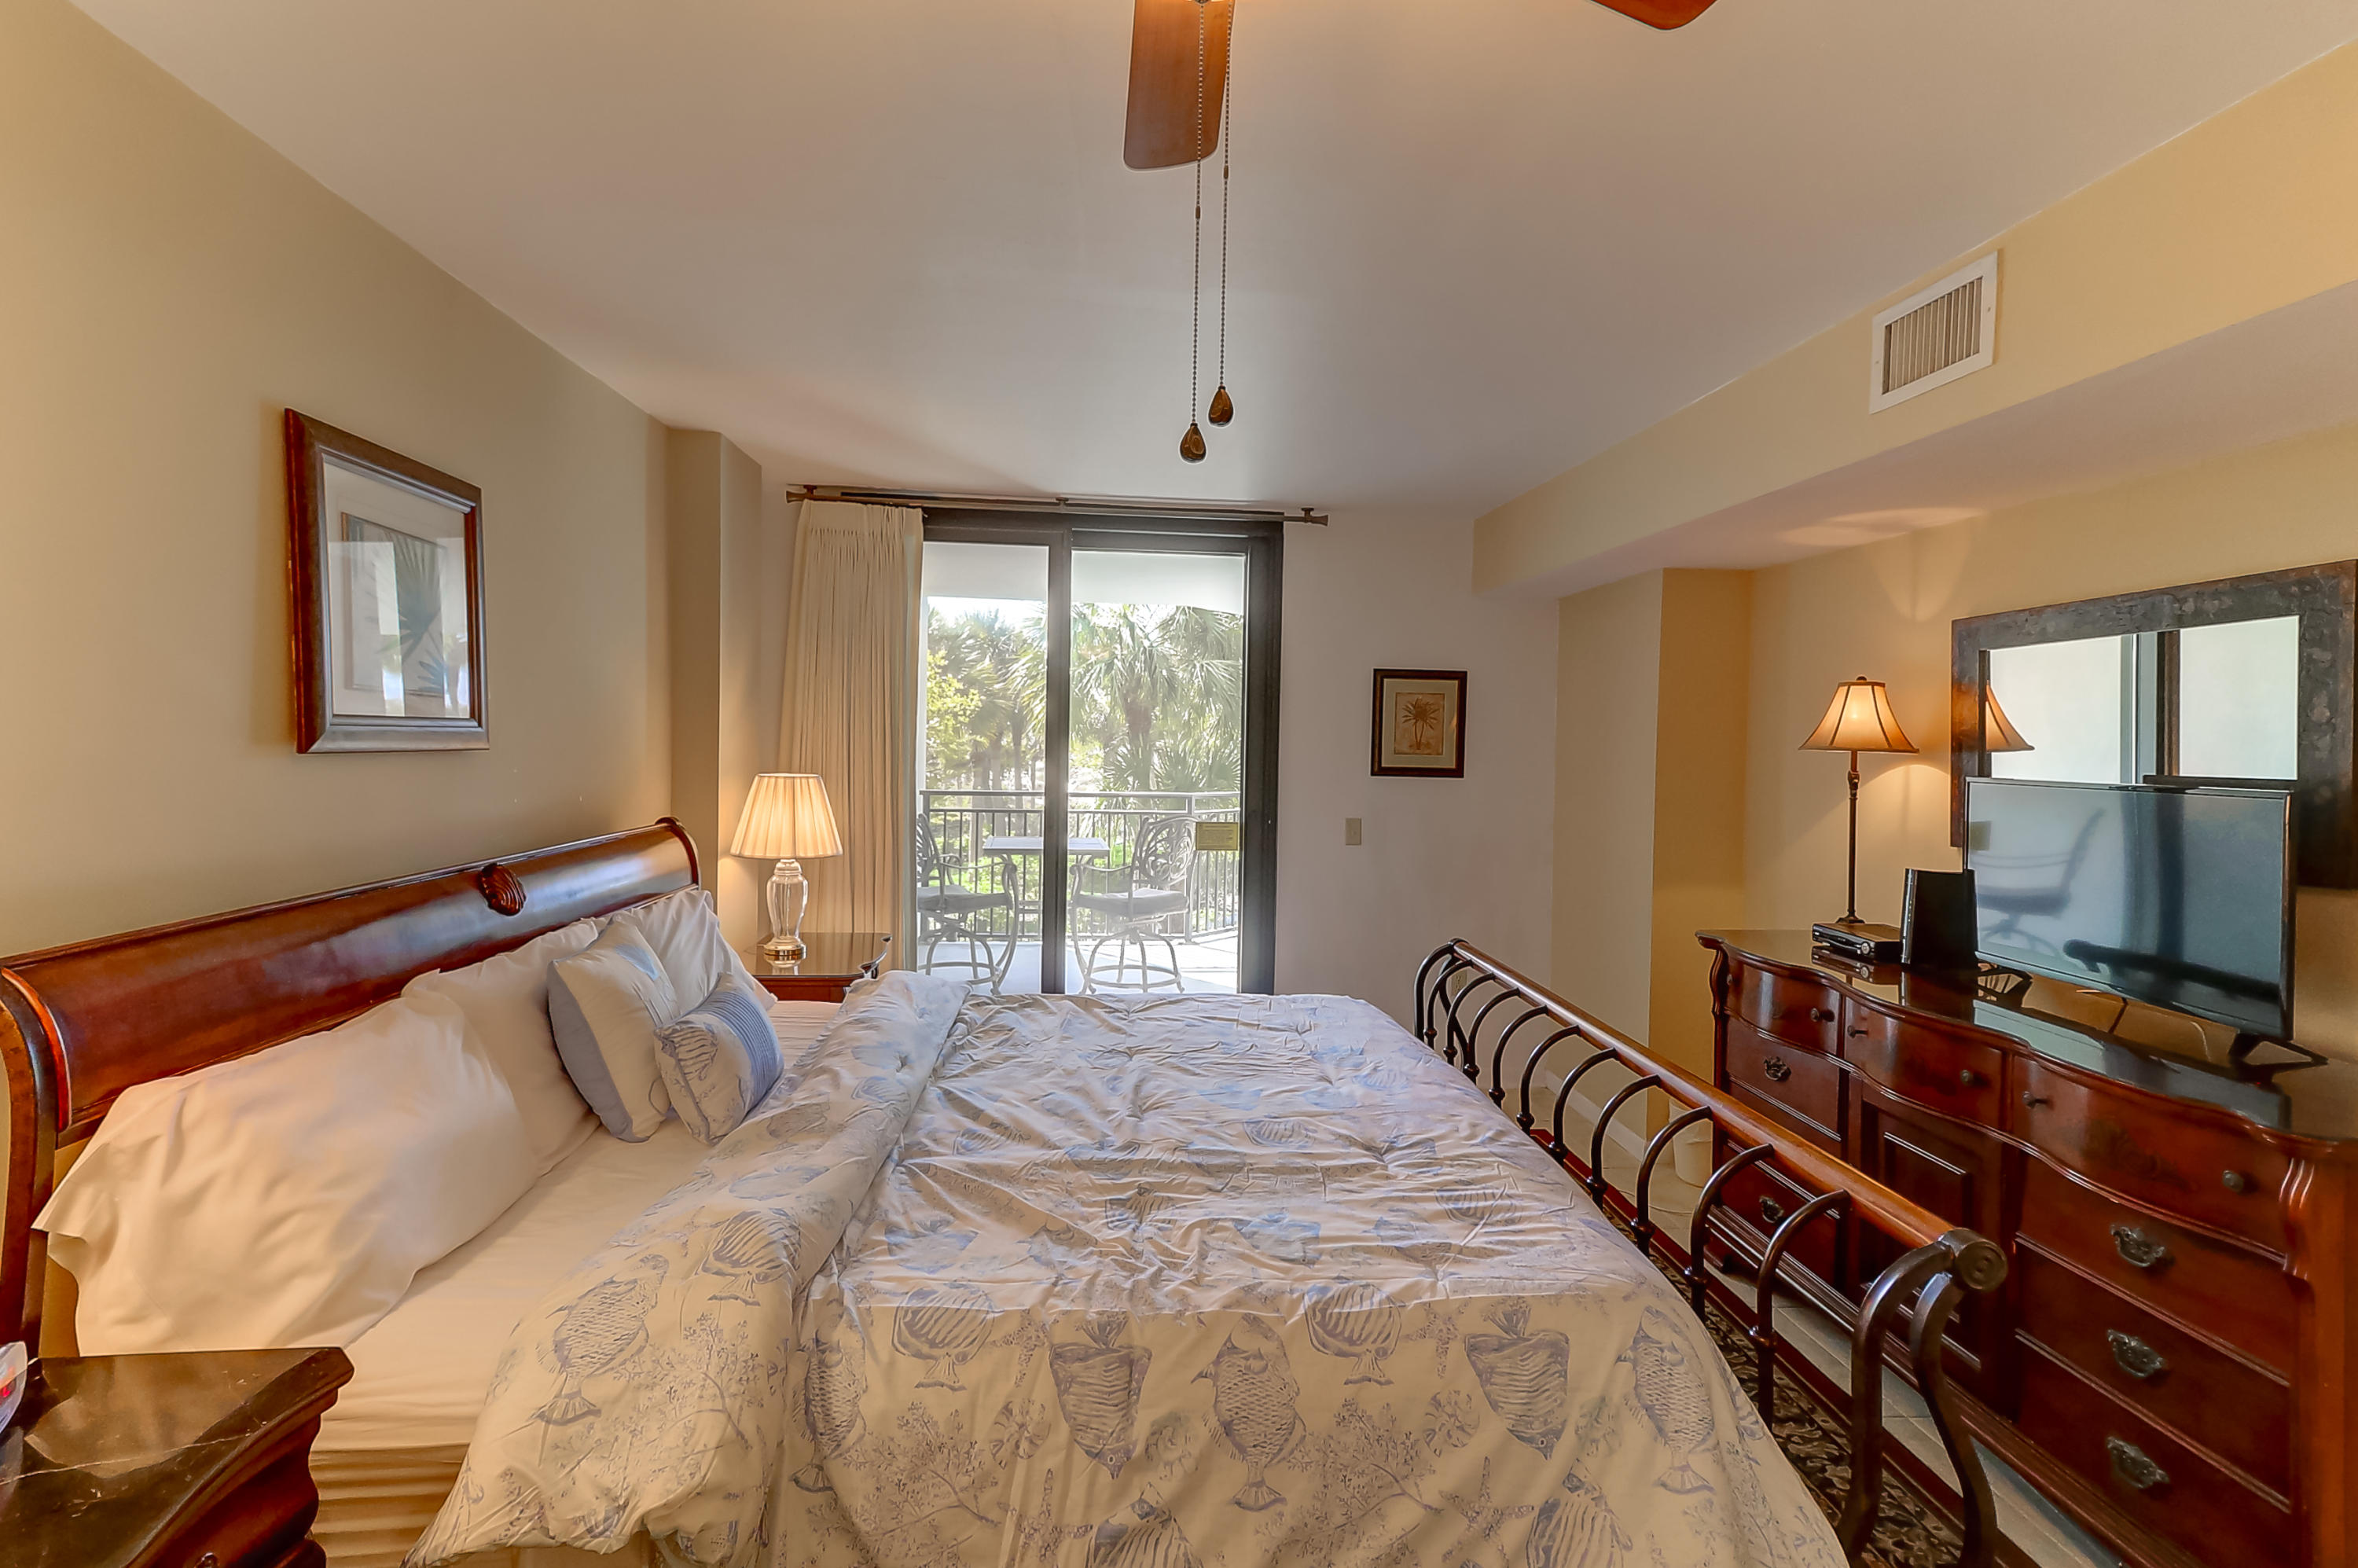 Wild Dunes Homes For Sale - 116-C Shipwatch, Isle of Palms, SC - 14